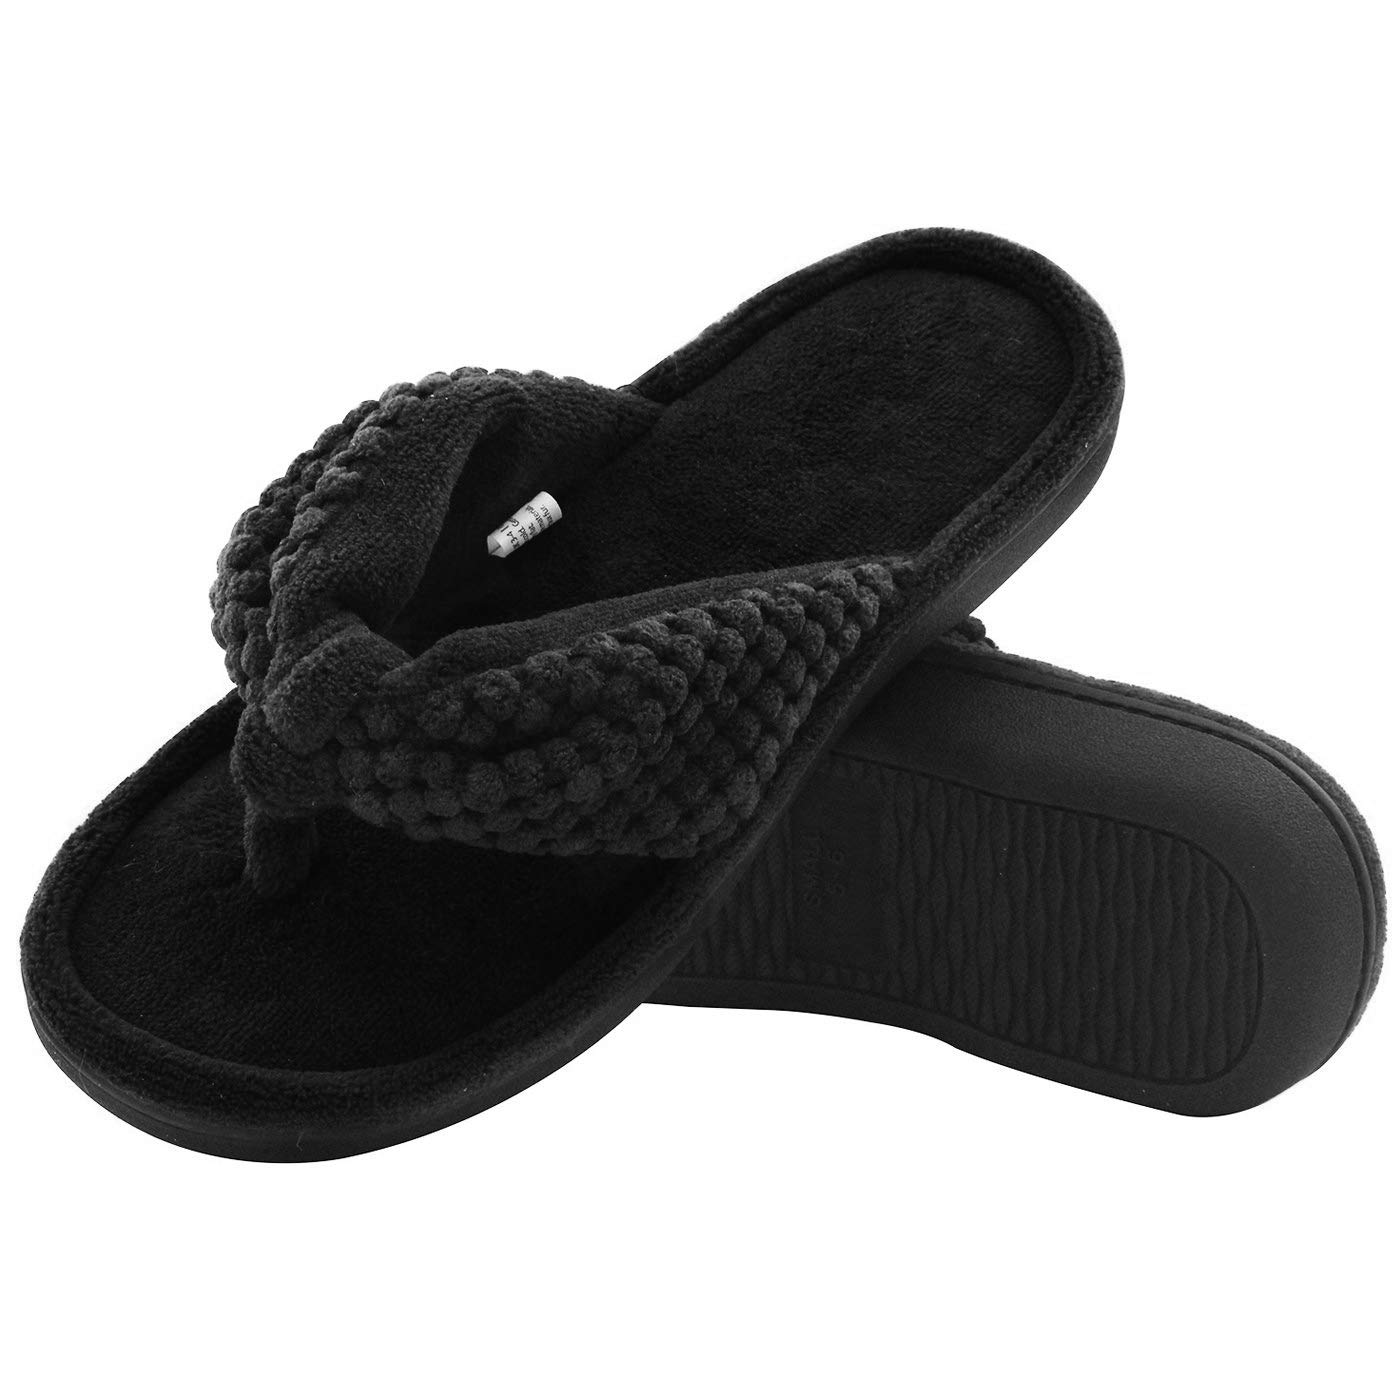 e32e839326f8f ULTRAIDEAS Women's Memory Foam Flip Flop Slippers with Cozy Terry Lining,  Moisture-Wicking Open Toe Slip On Spa Thong Sandals Mules, Ladies' House ...